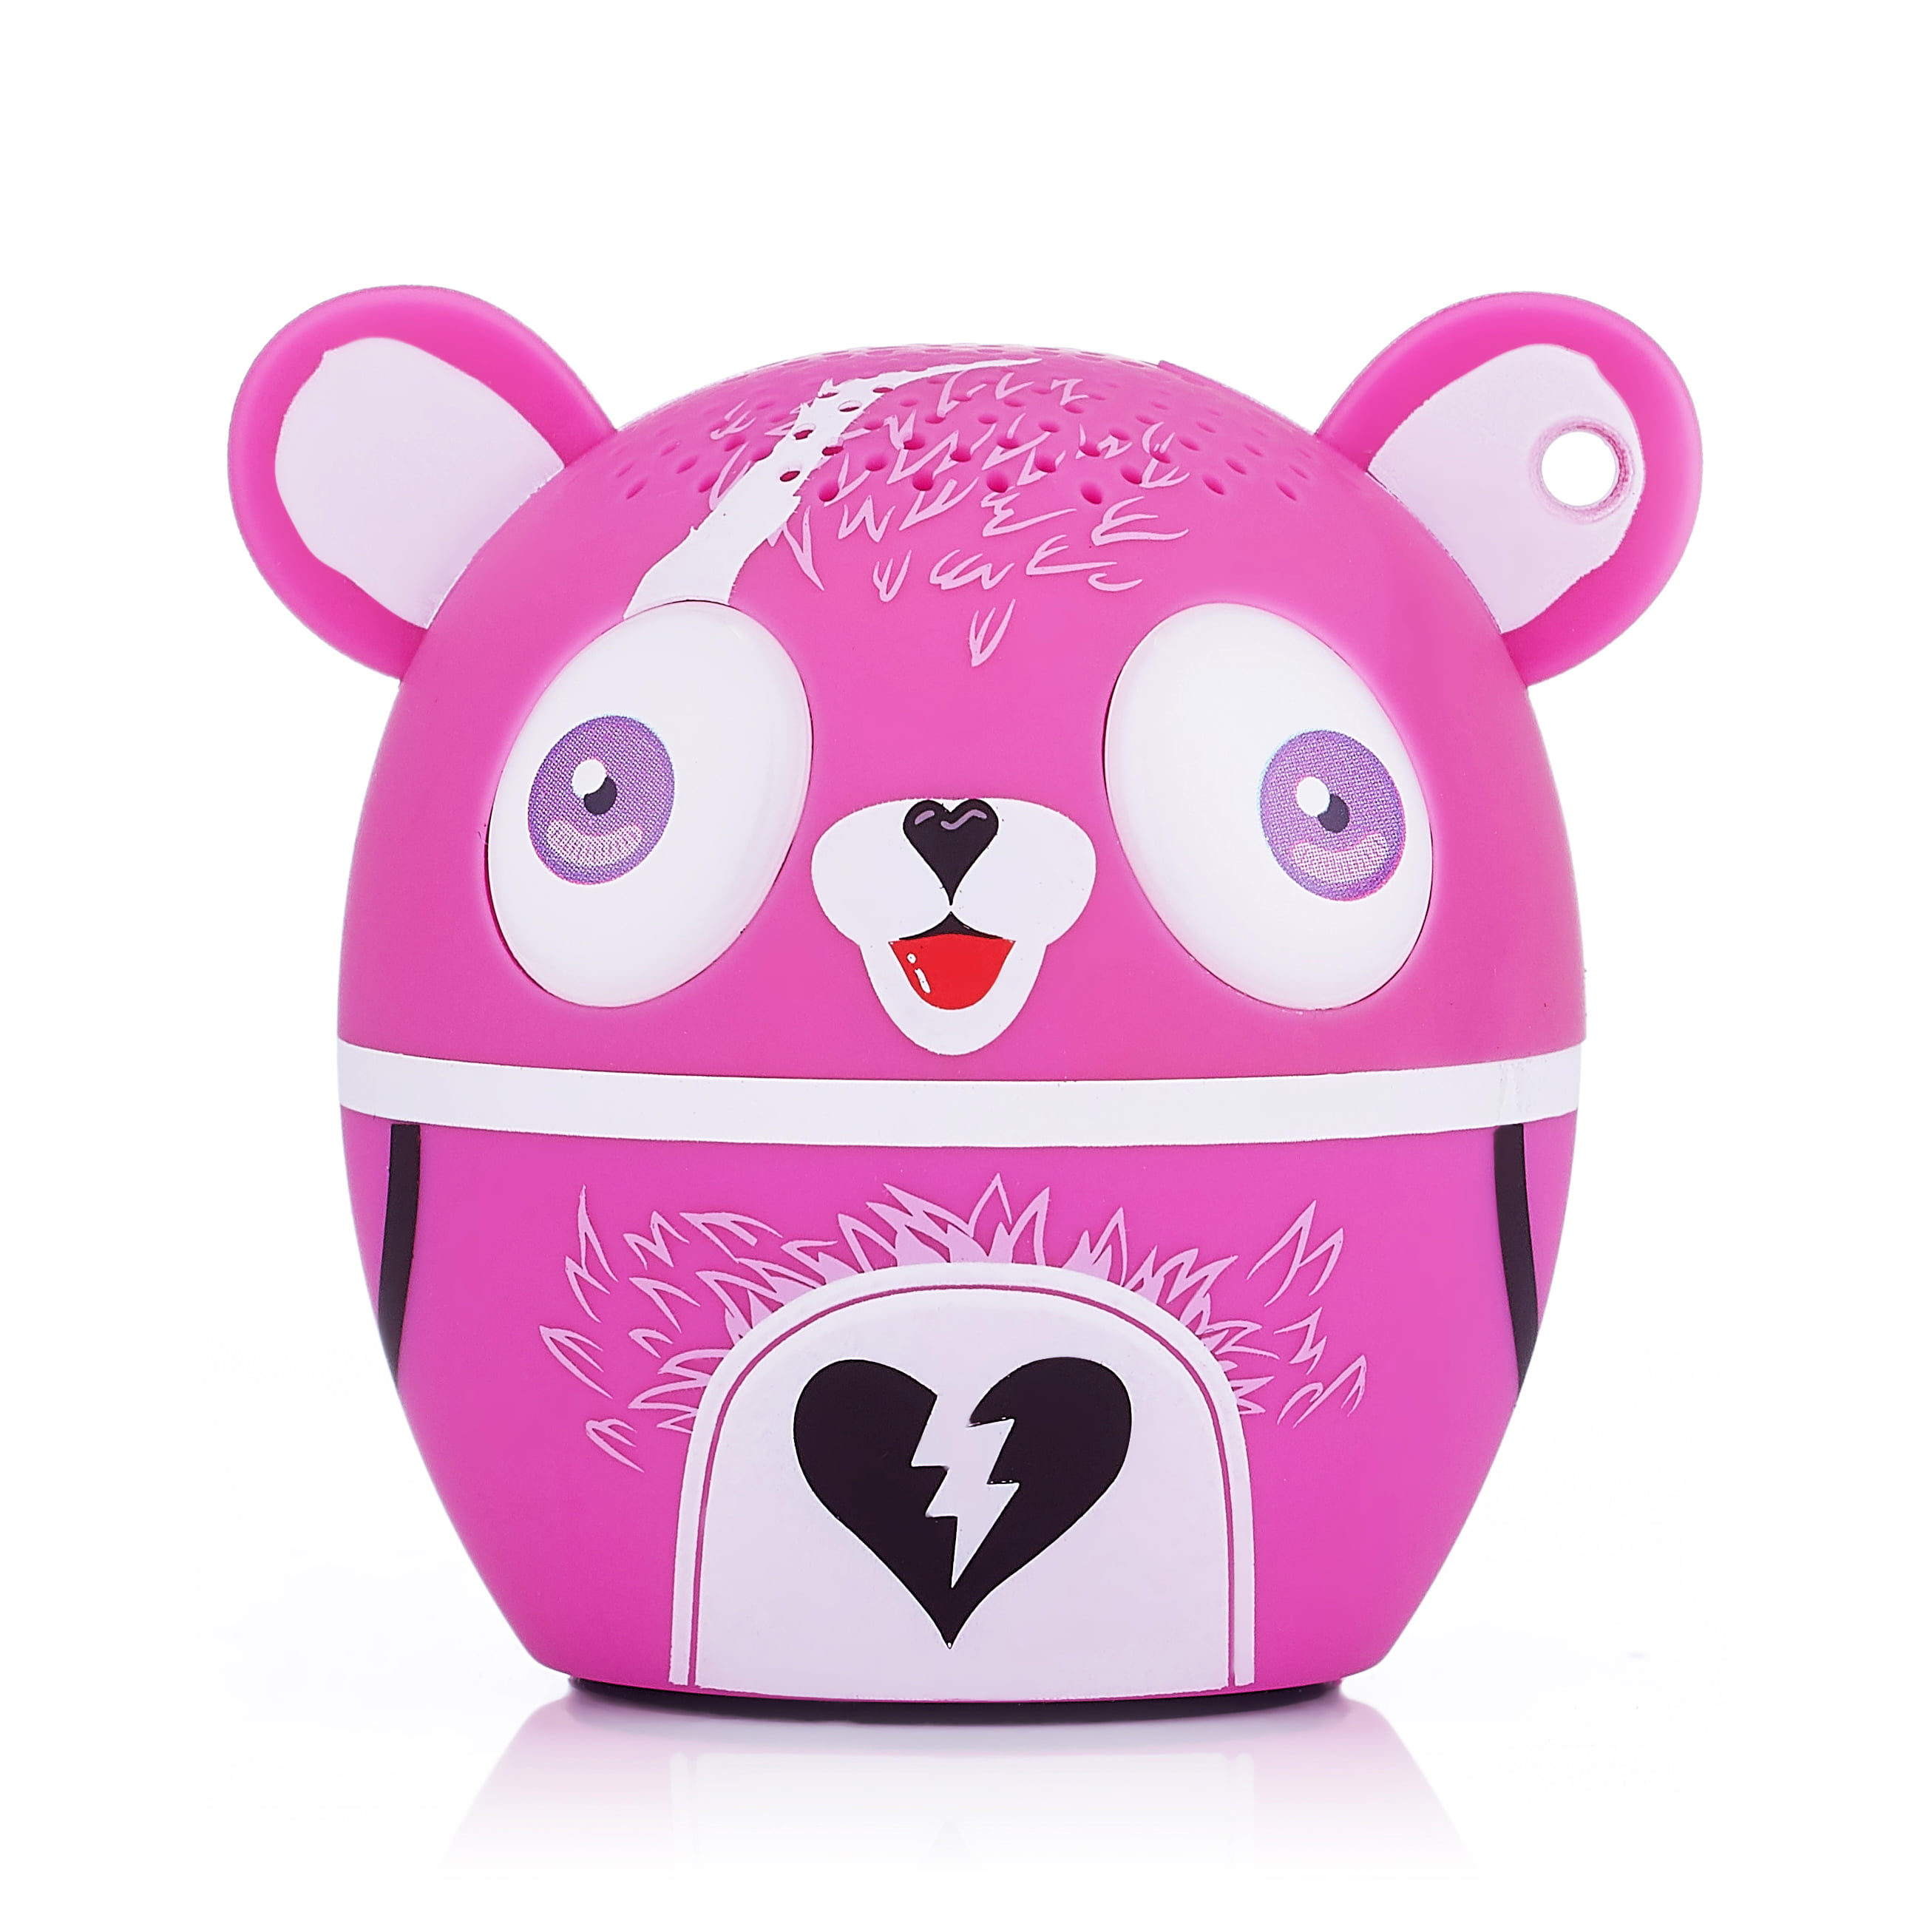 Fortnite Cuddle Team Leader - Collectible Bluetooth Speaker